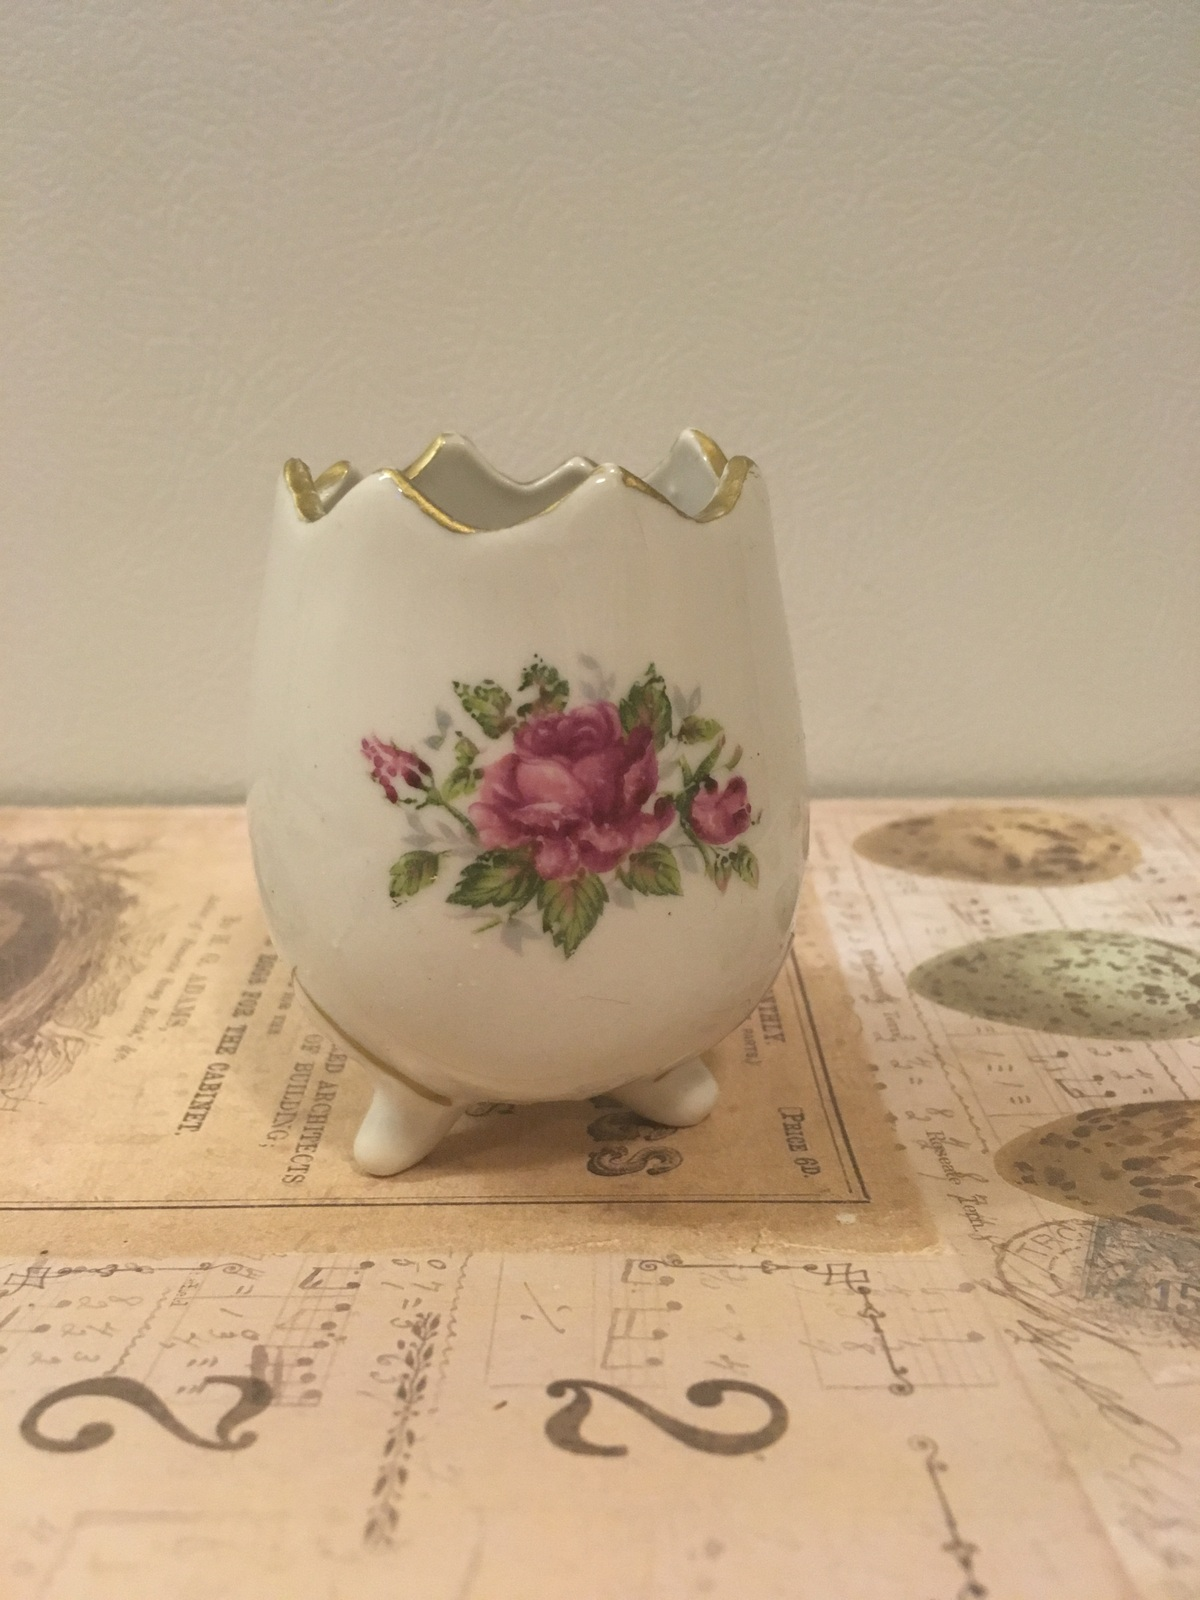 Vintage Egg Shaped Vase Cracked rim Floral DesIgn Shabby Chic Cottage